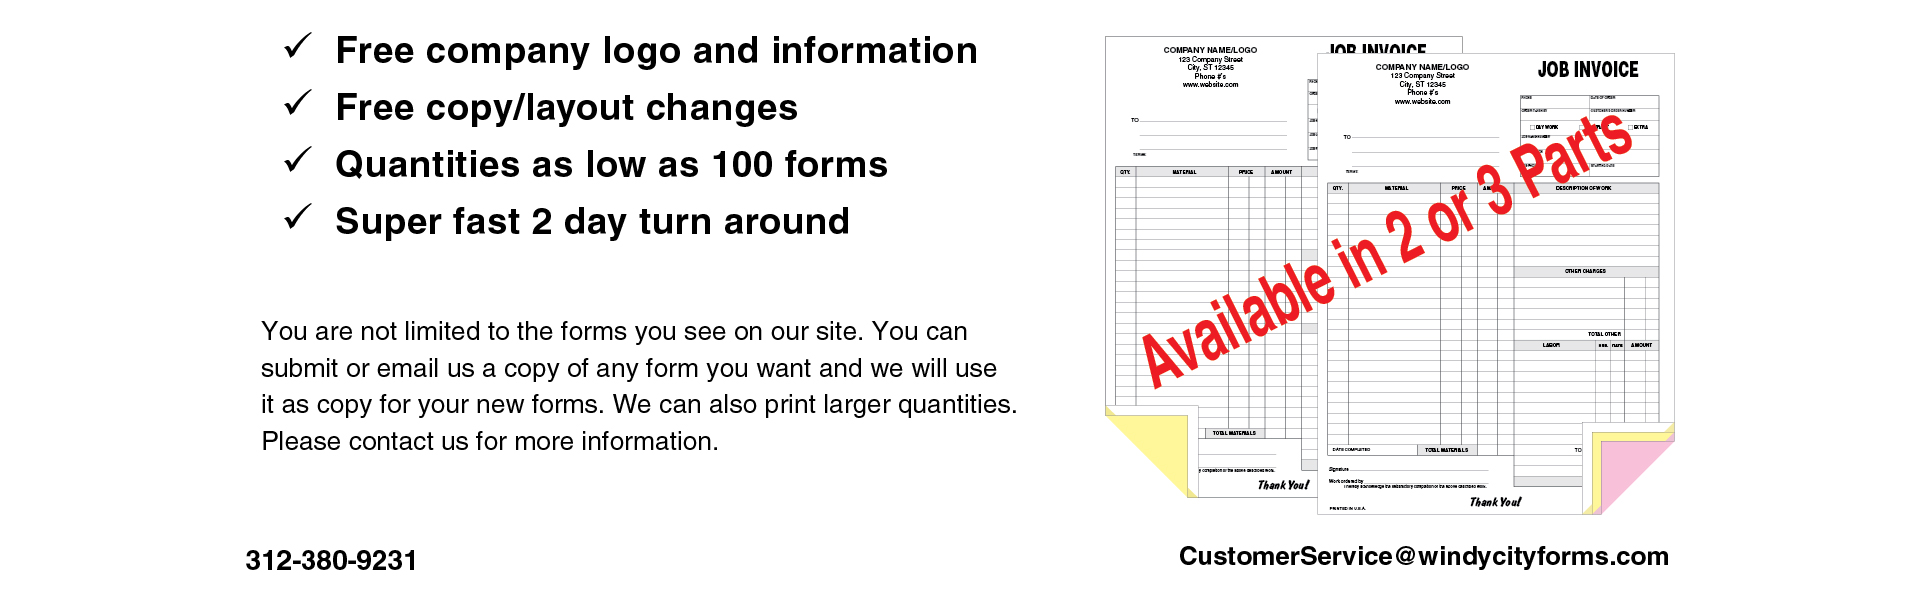 Free company logo and information. Free copy/layout changes. Quantities as low as 100 forms. Super fast 2 day turn around. You are not limited to the forms you see on our site. You can submit or email us a copy of any form you want and we will use it as c